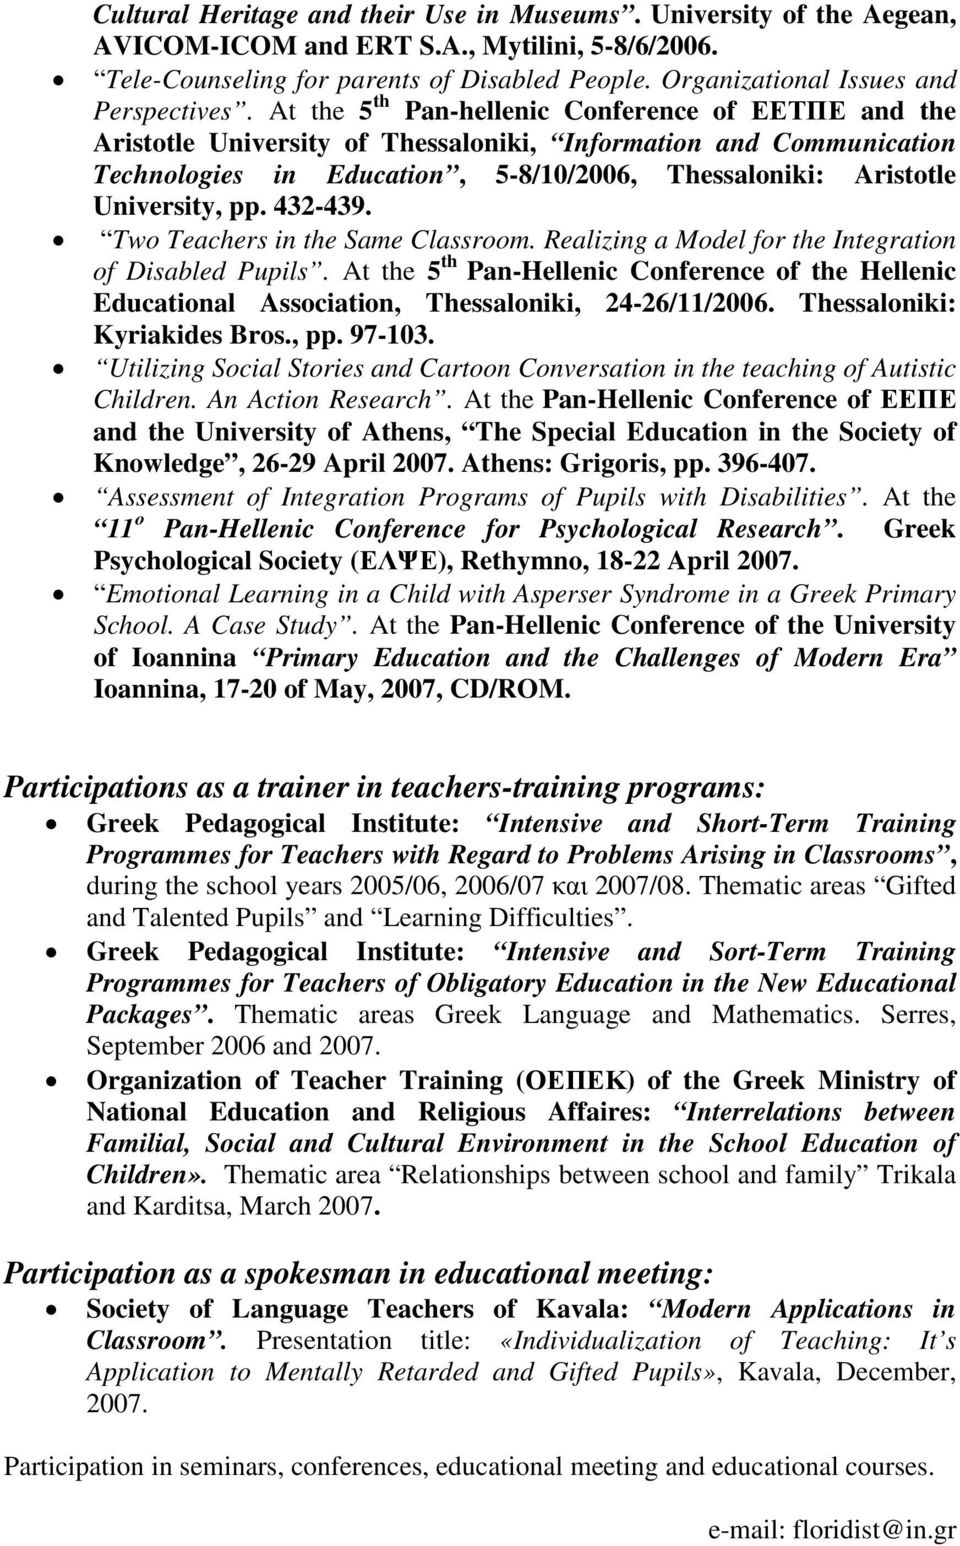 At the 5 th Pan-hellenic Conference of ΕΕΤΠΕ and the Aristotle University of Thessaloniki, Information and Communication Technologies in Education, 5-8/10/2006, Thessaloniki: Aristotle University, pp.